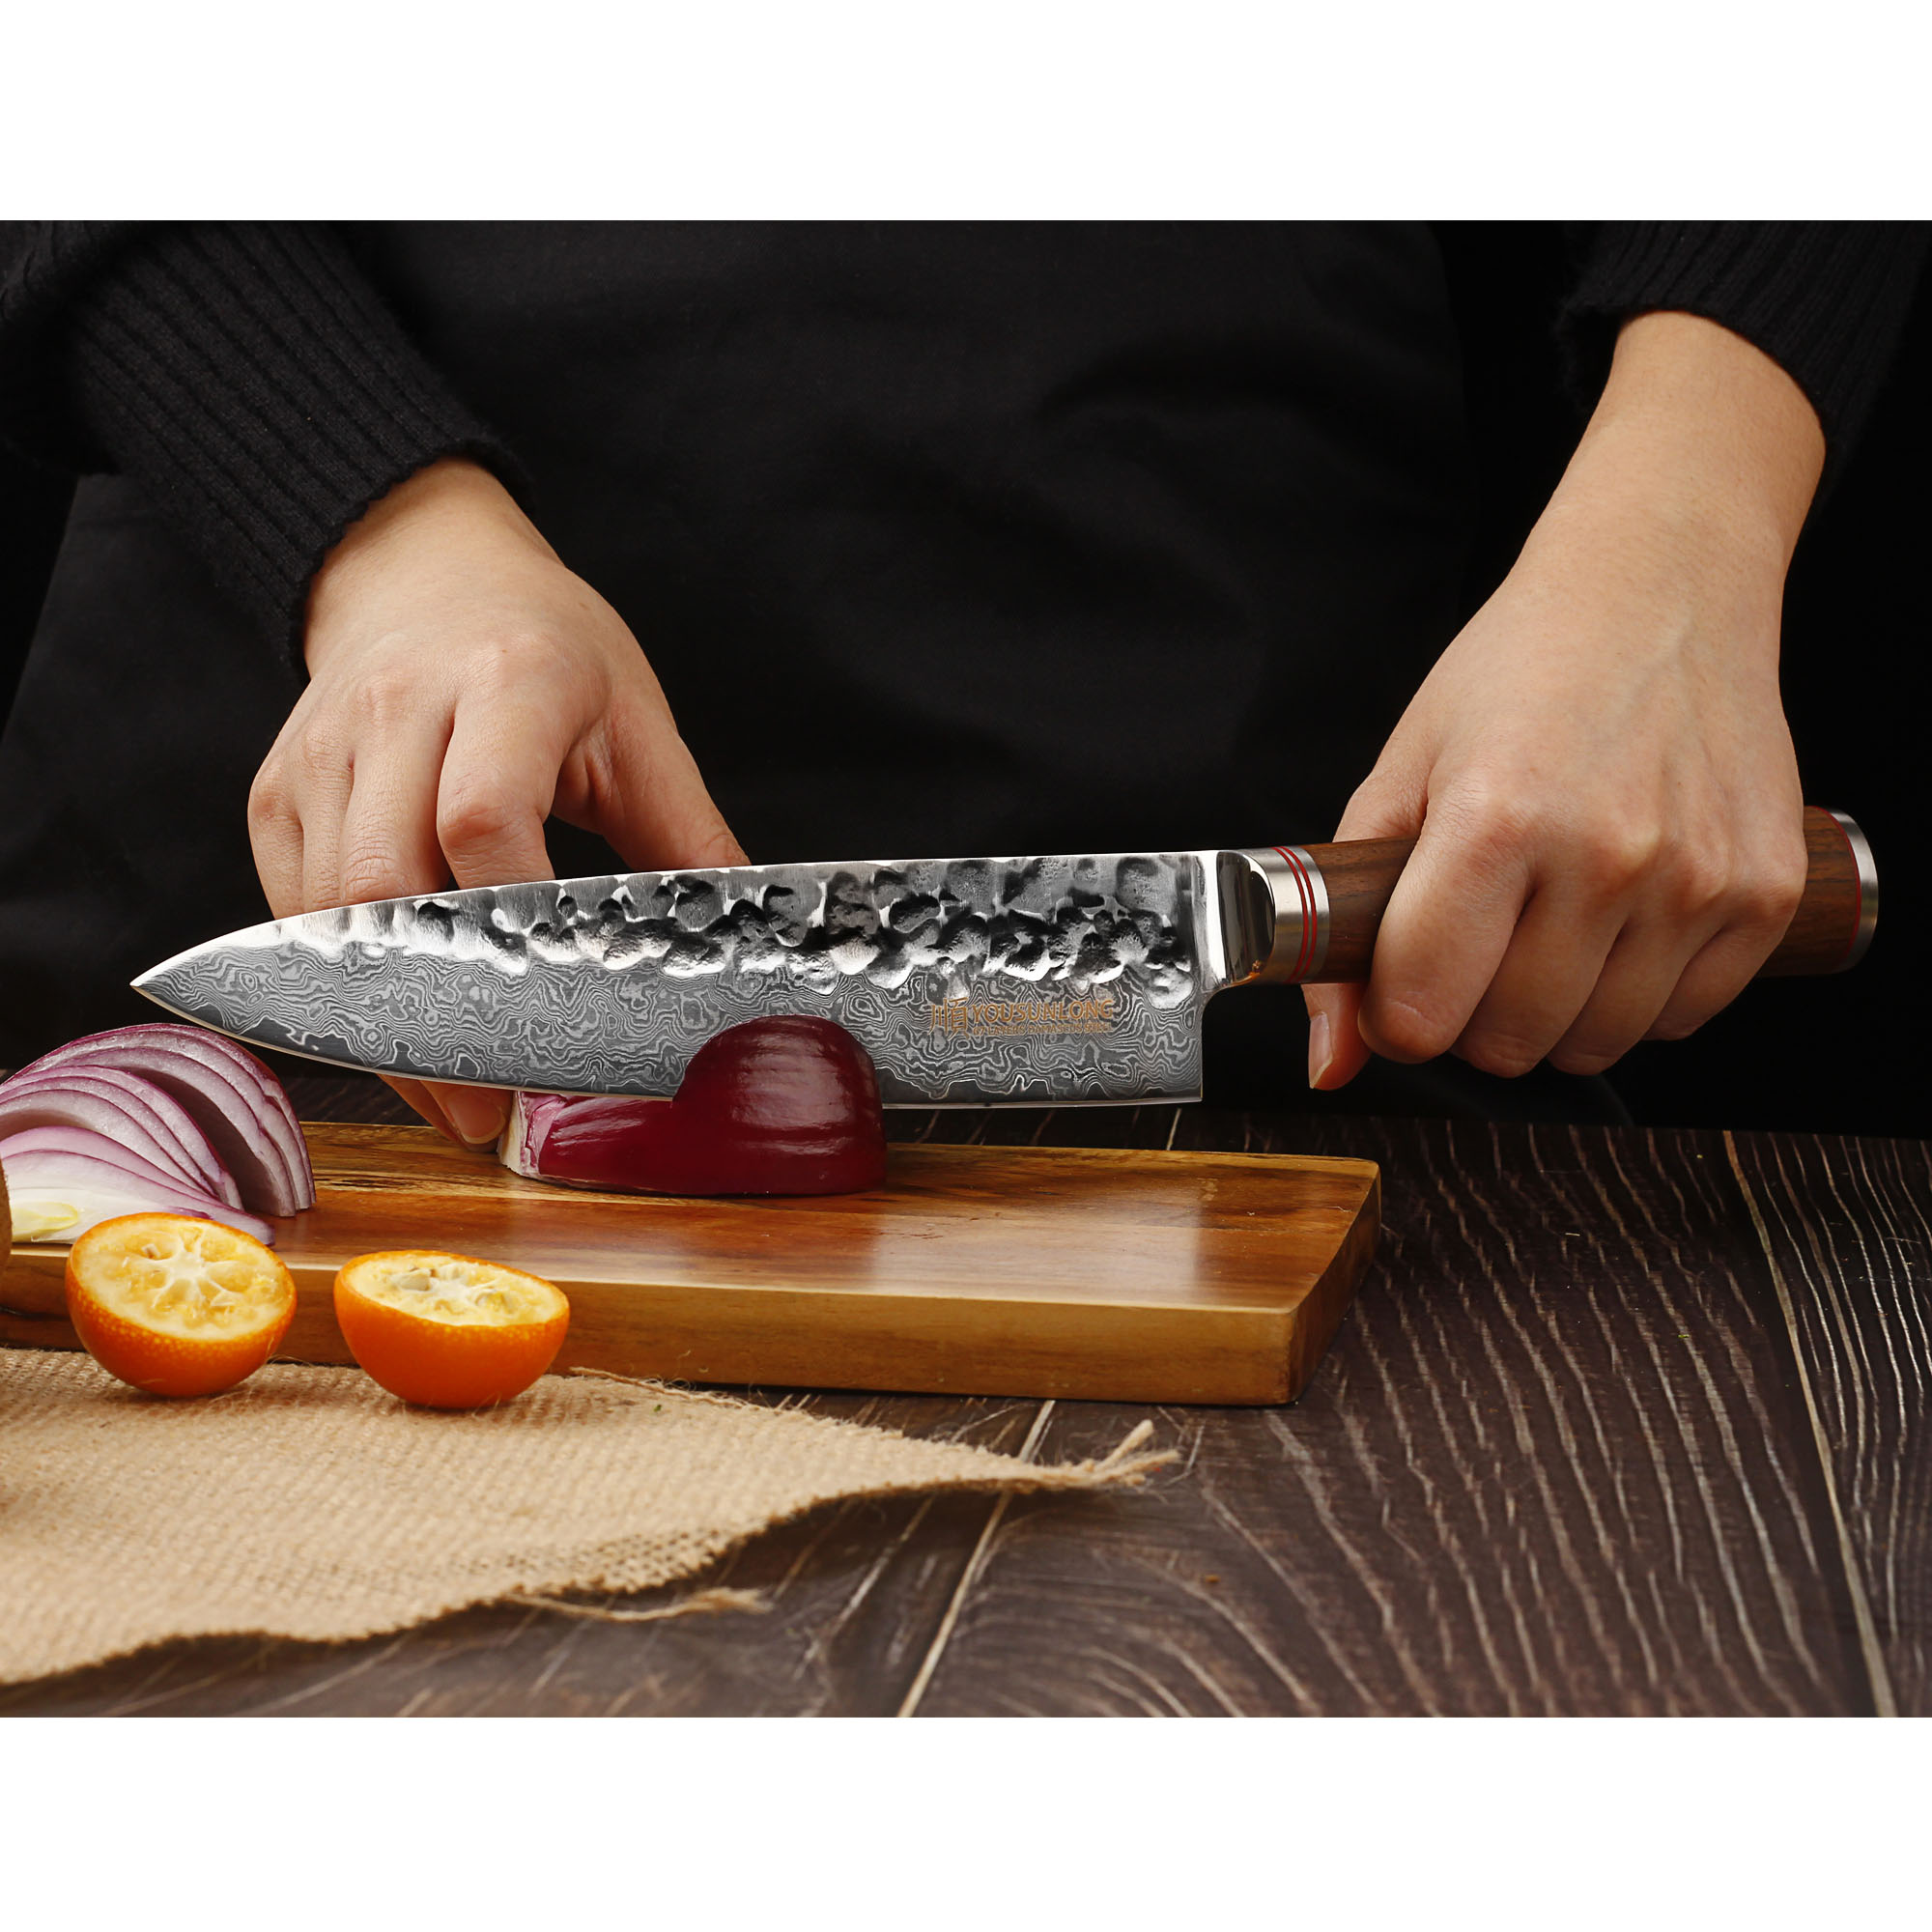 YOUSUNLONG Chef Knife 8 Inch Professional Gyuto Damascus Steel V10 Steel Core,Natura Americas Walnut Wood Handle 2